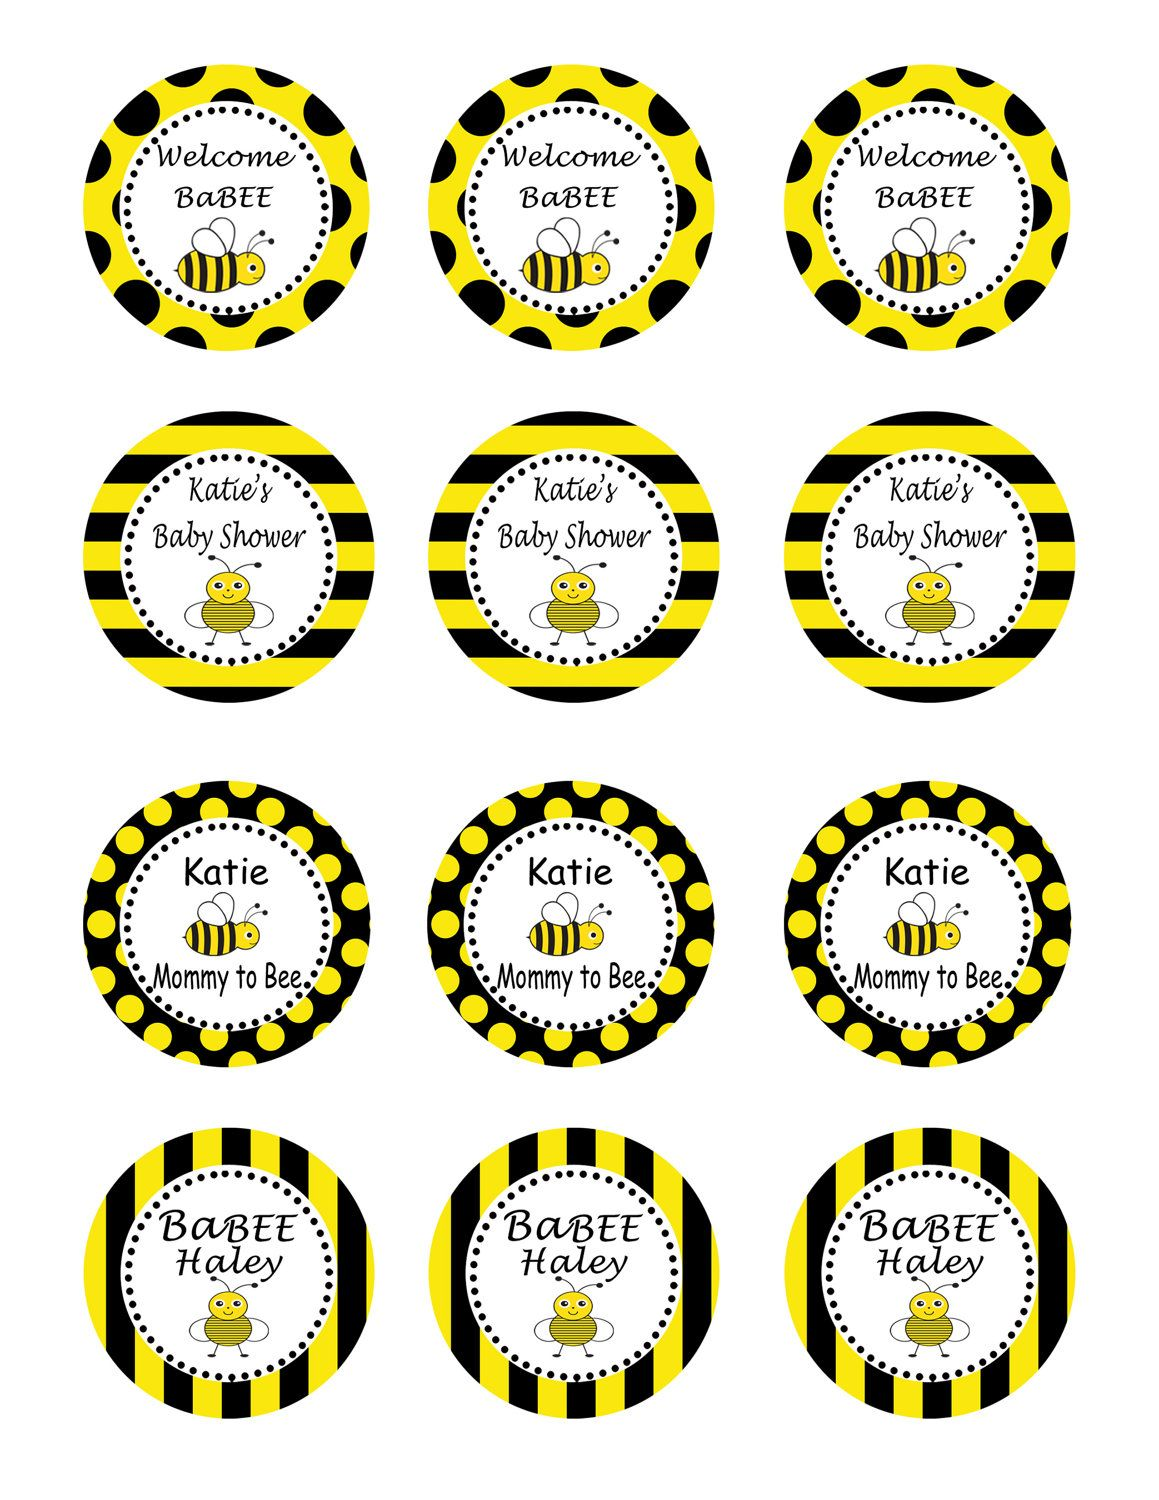 Bumble Bee Baby Shower Party Diy Printable Circles 10 00 Via Etsy